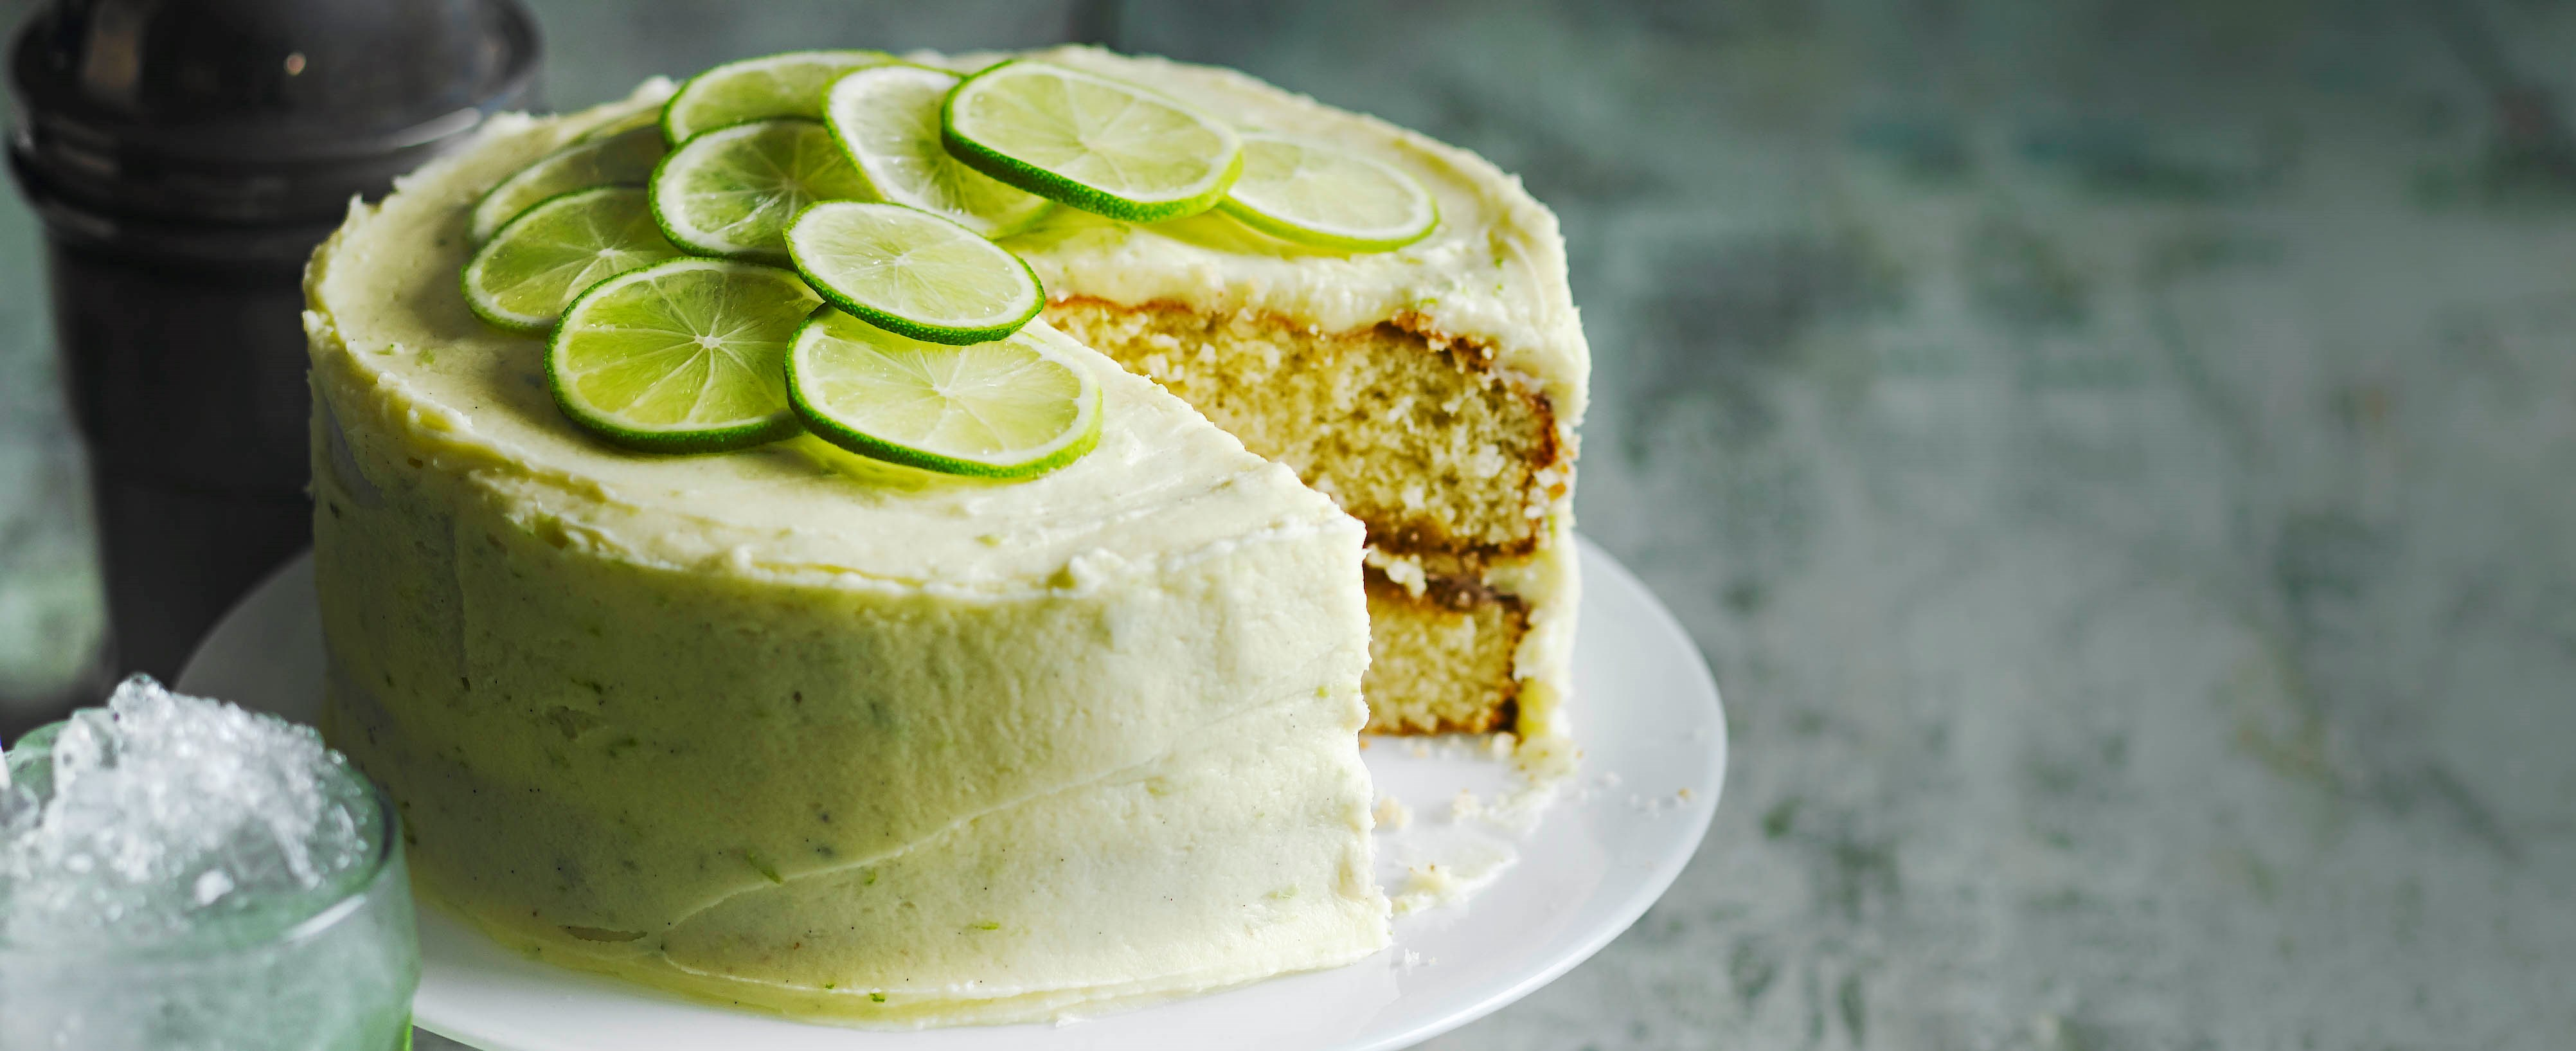 Can You Use Gin In Cakes